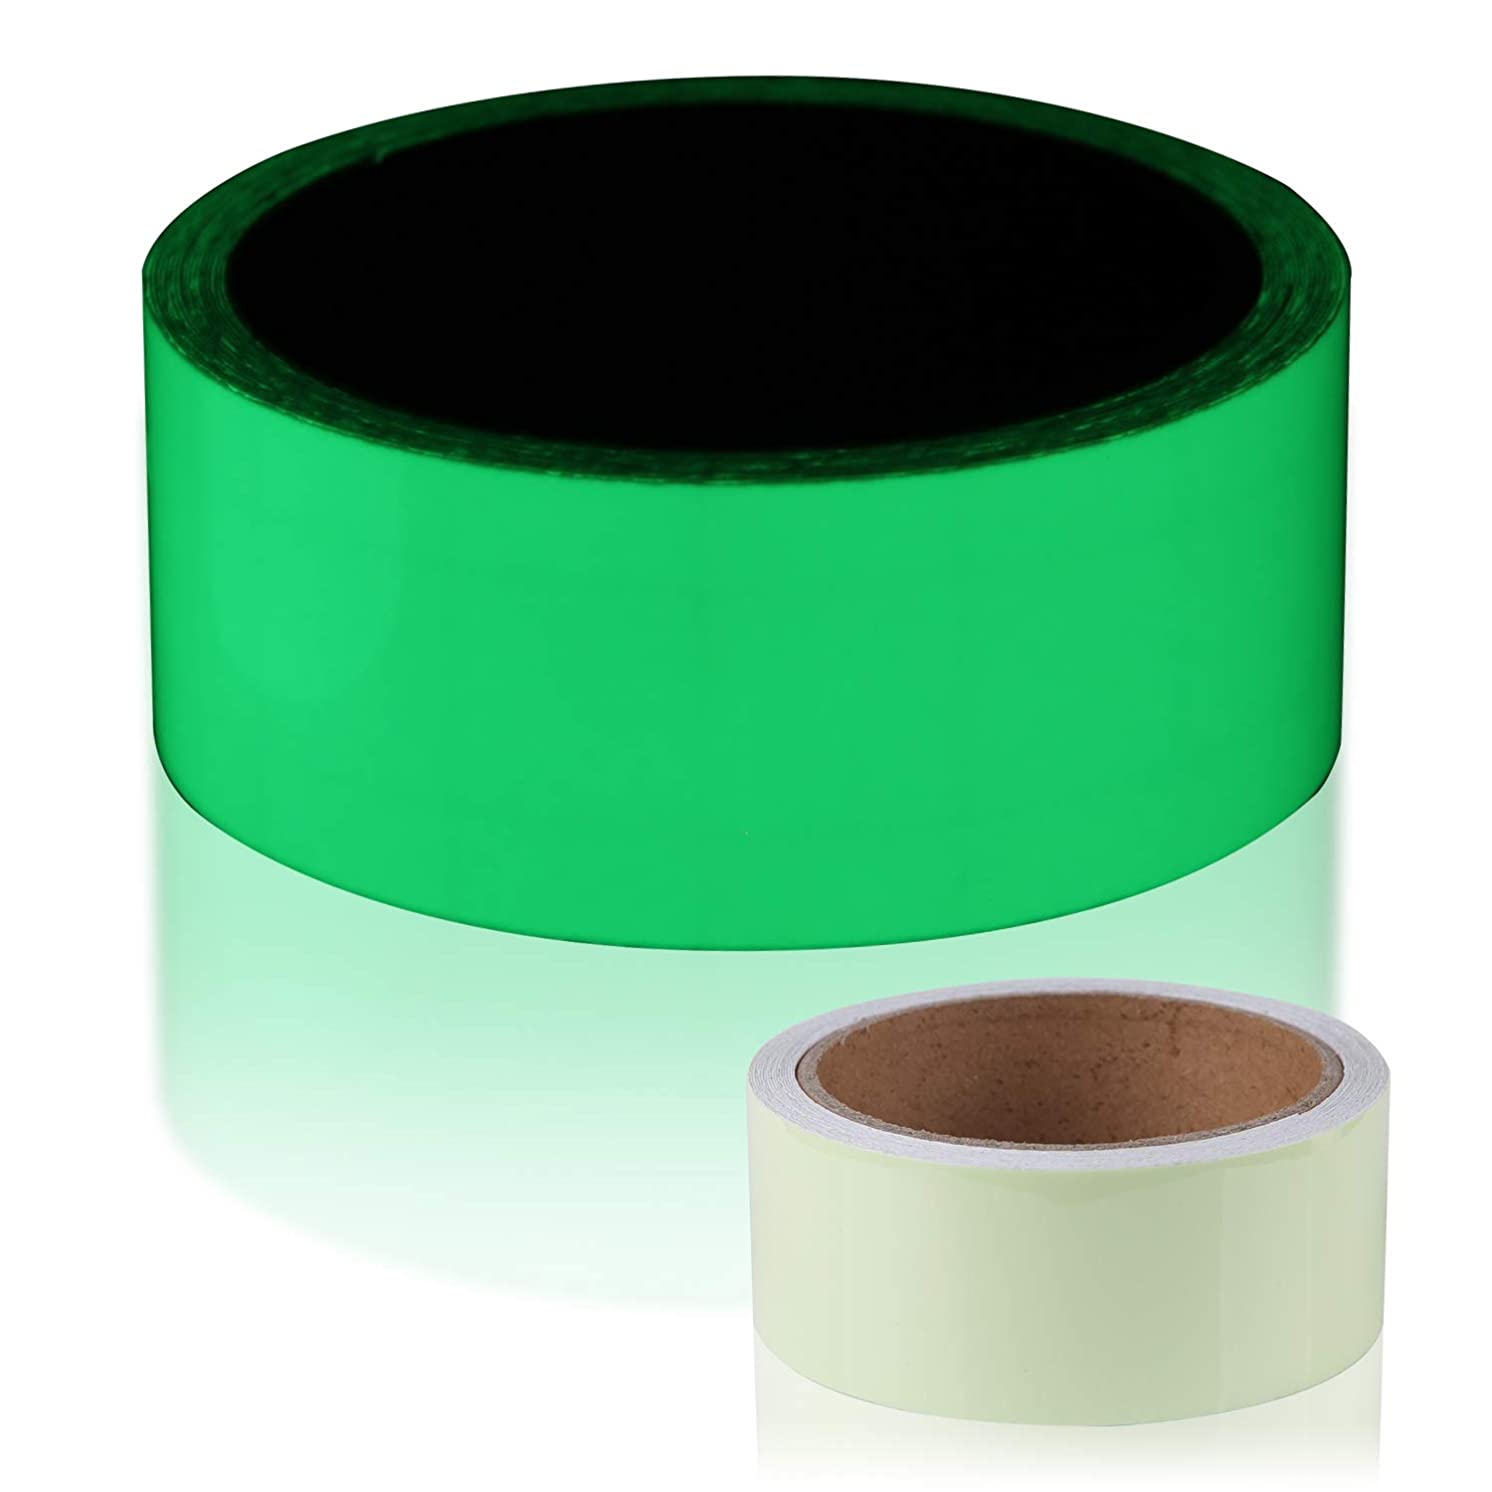 SENCOL Luminous Tape Glow time up to 12hours in The Dark Fluorescent Tape with Luminescent Emergency roll Safety Signs. Glowing Tape with Bright Fluorescent. (Green, 1.2inches x 17ft)